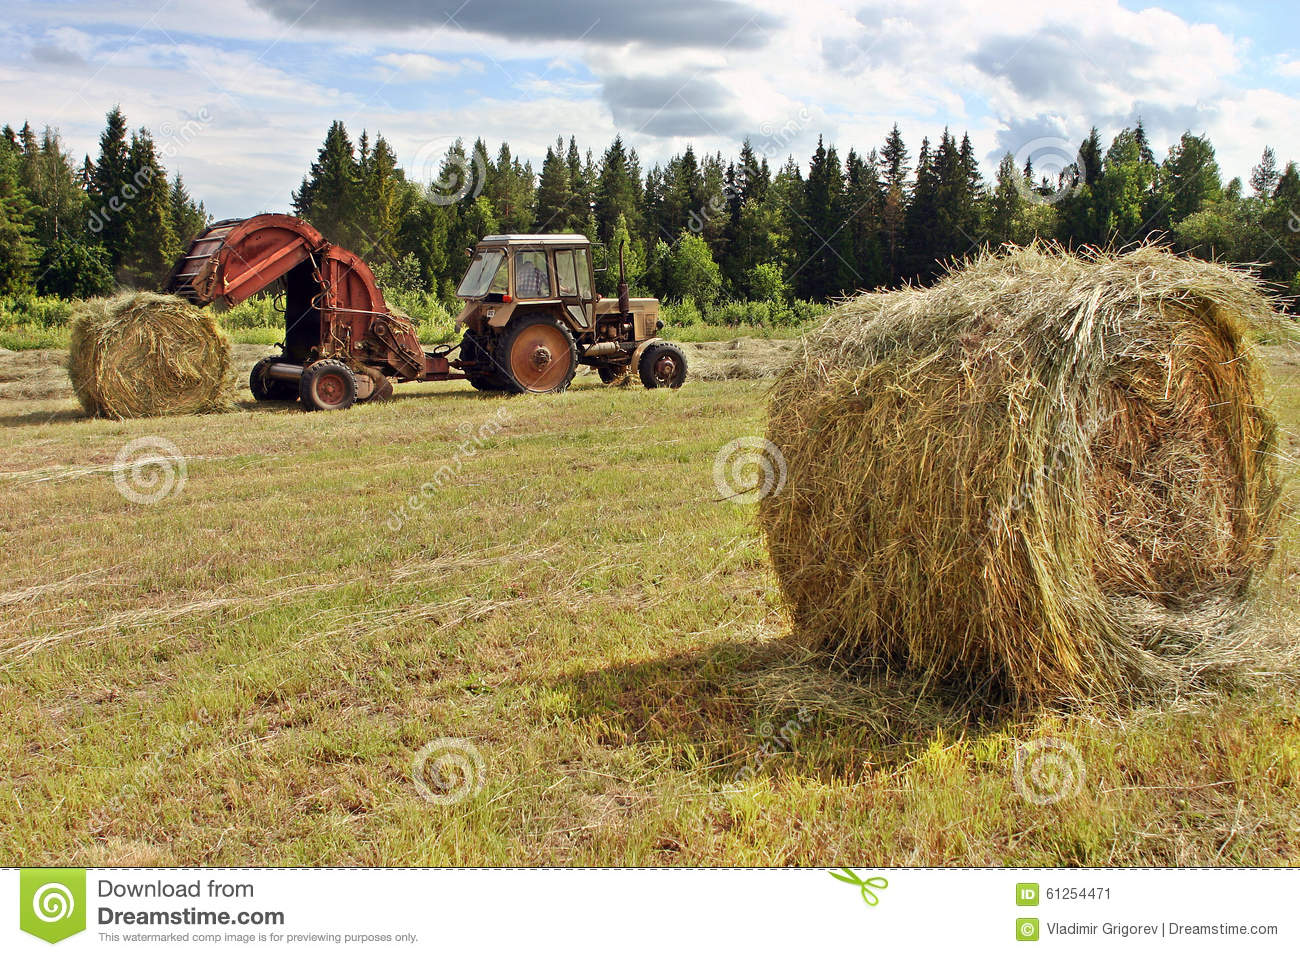 Hay Farmer Tractor Cartoon : Farmer tractor with baler spitting out round rolls of hay